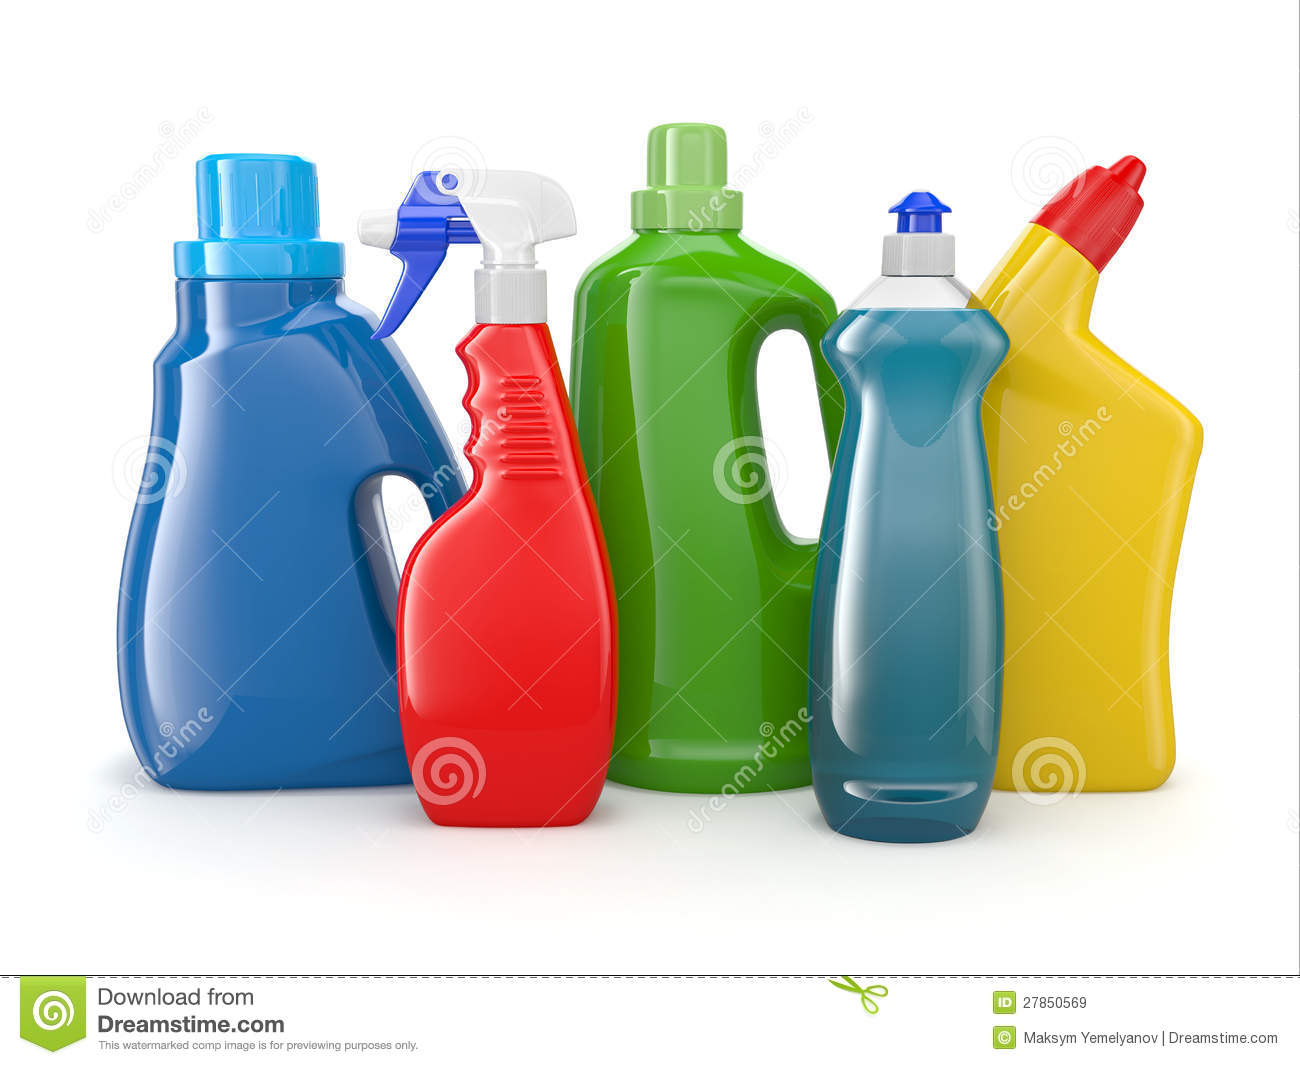 Cleaning bottles clip art - photo#3